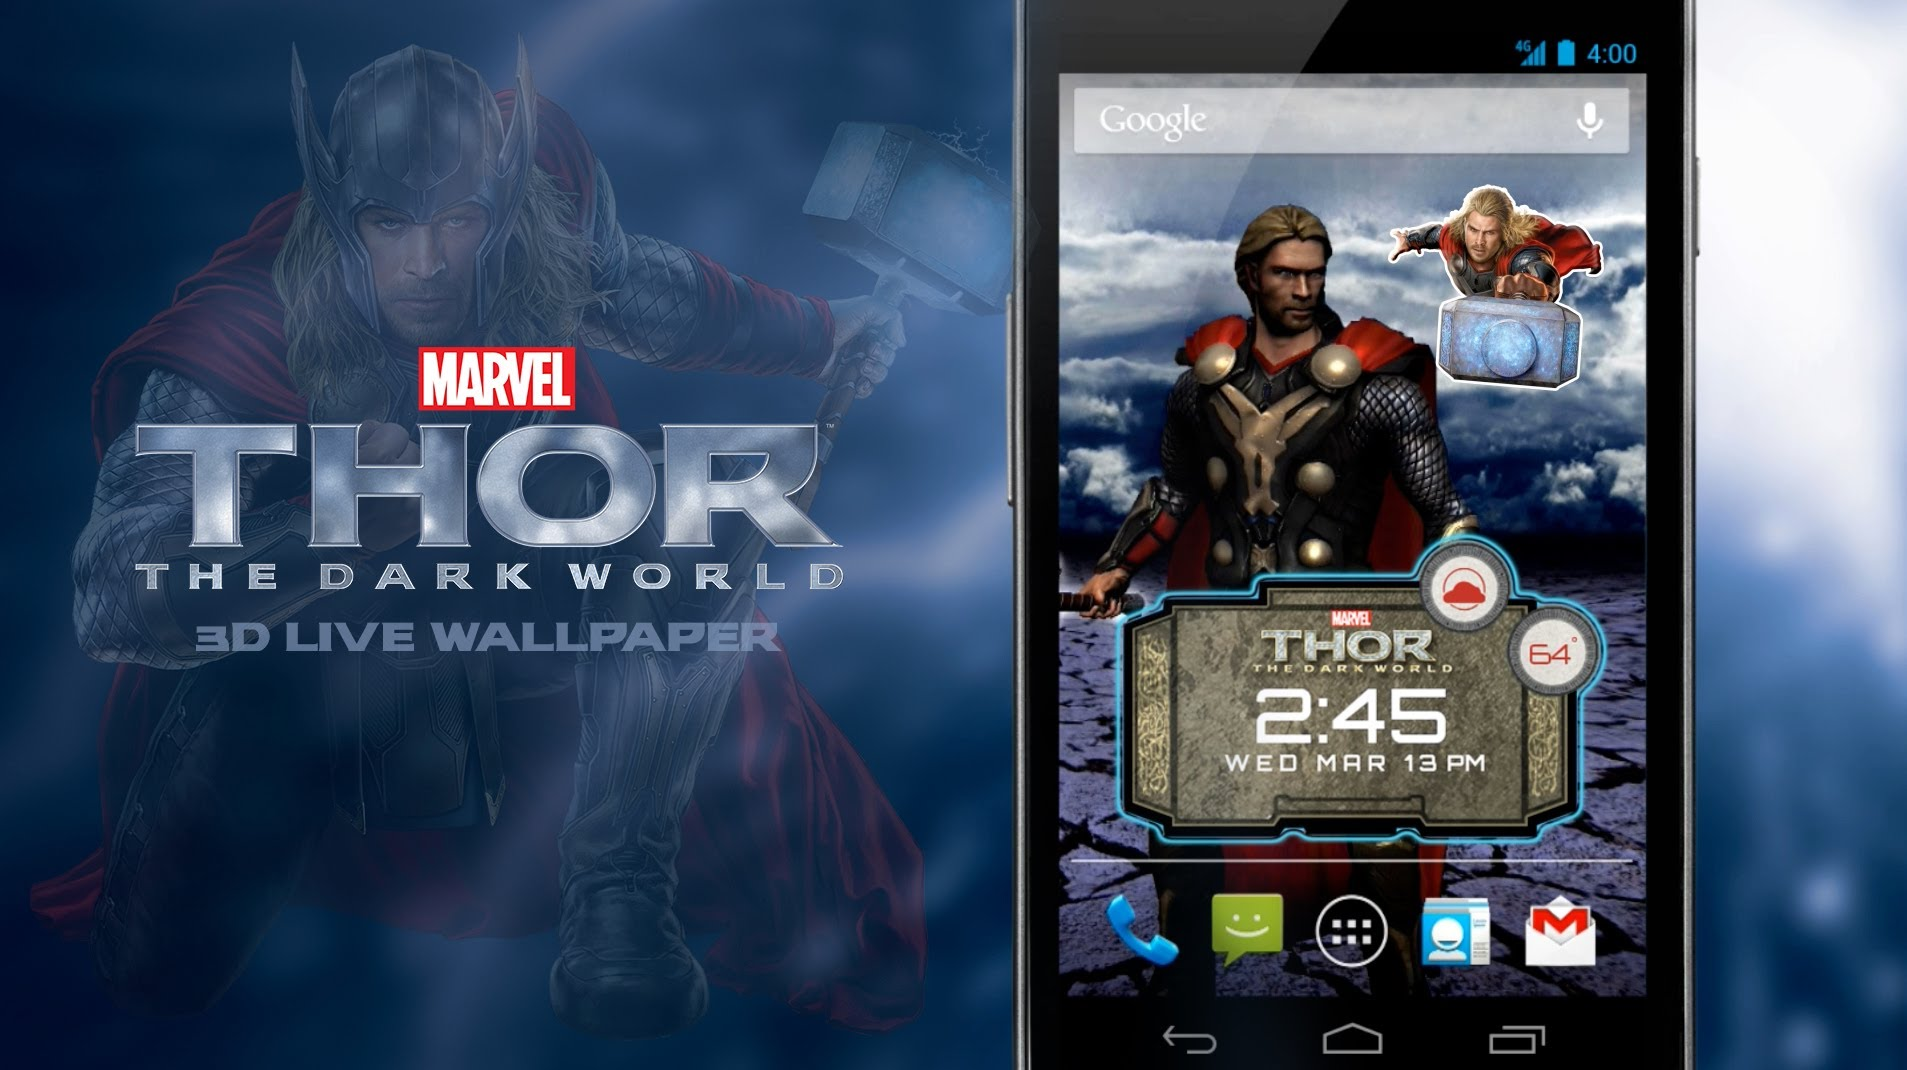 Thor Live Wallpaper